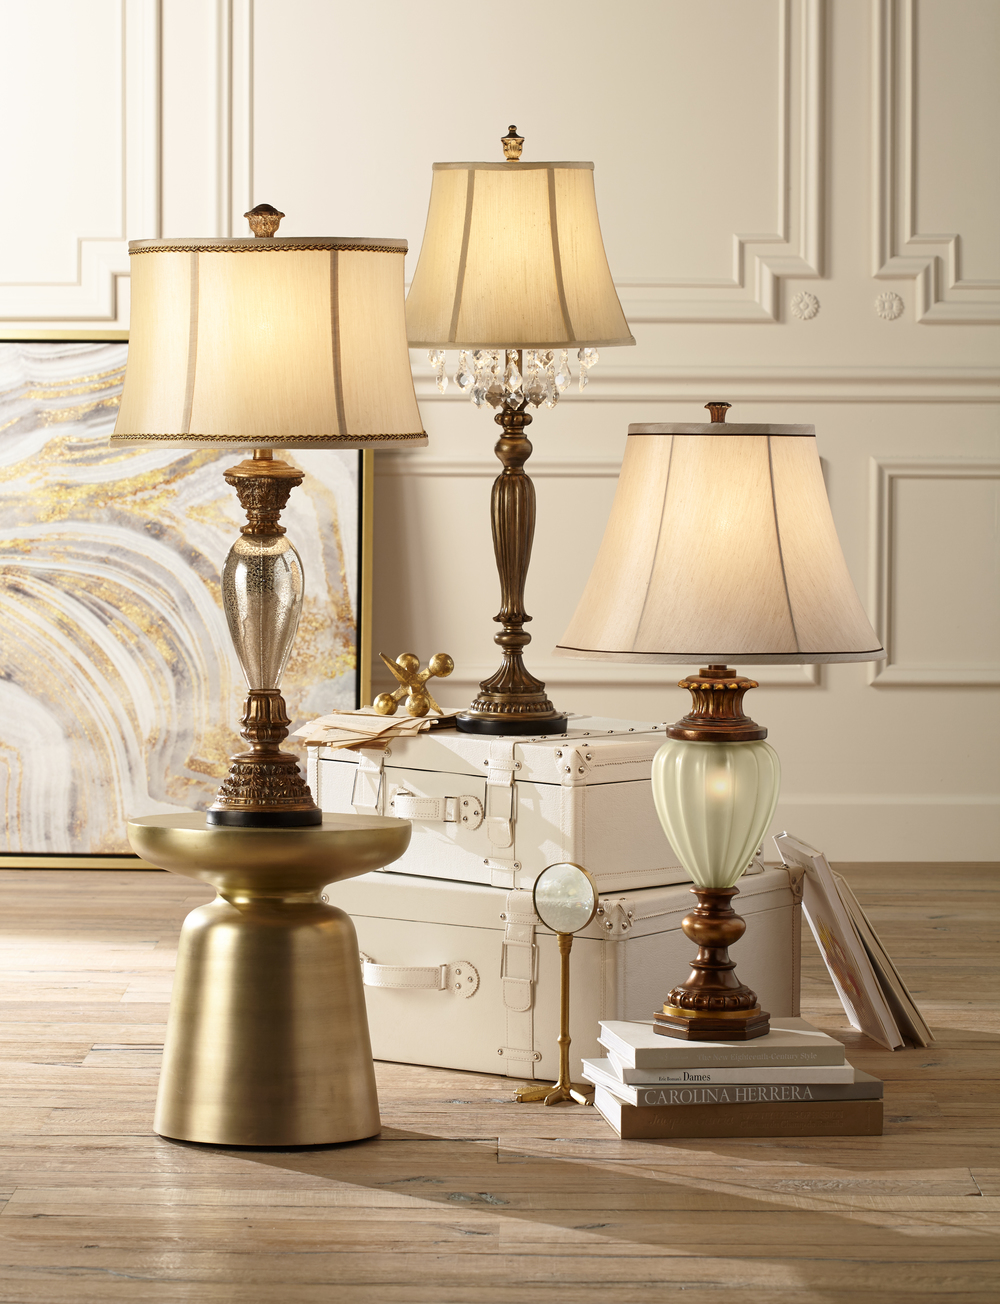 010516-traditional-table-lamps-h.jpg